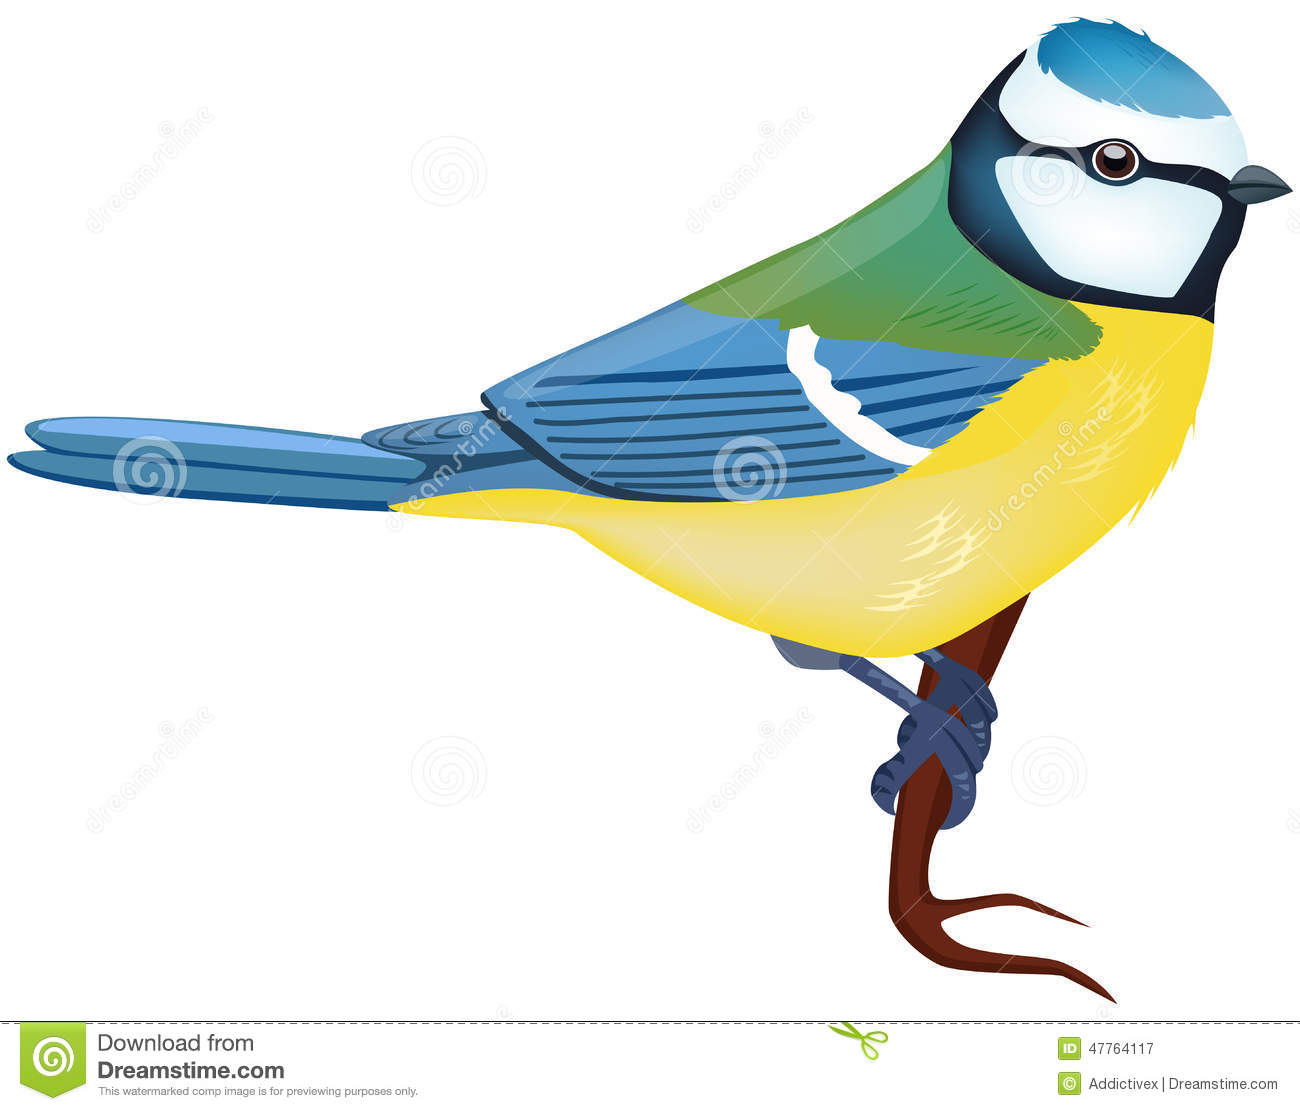 Blue Tit clipart #18, Download drawings